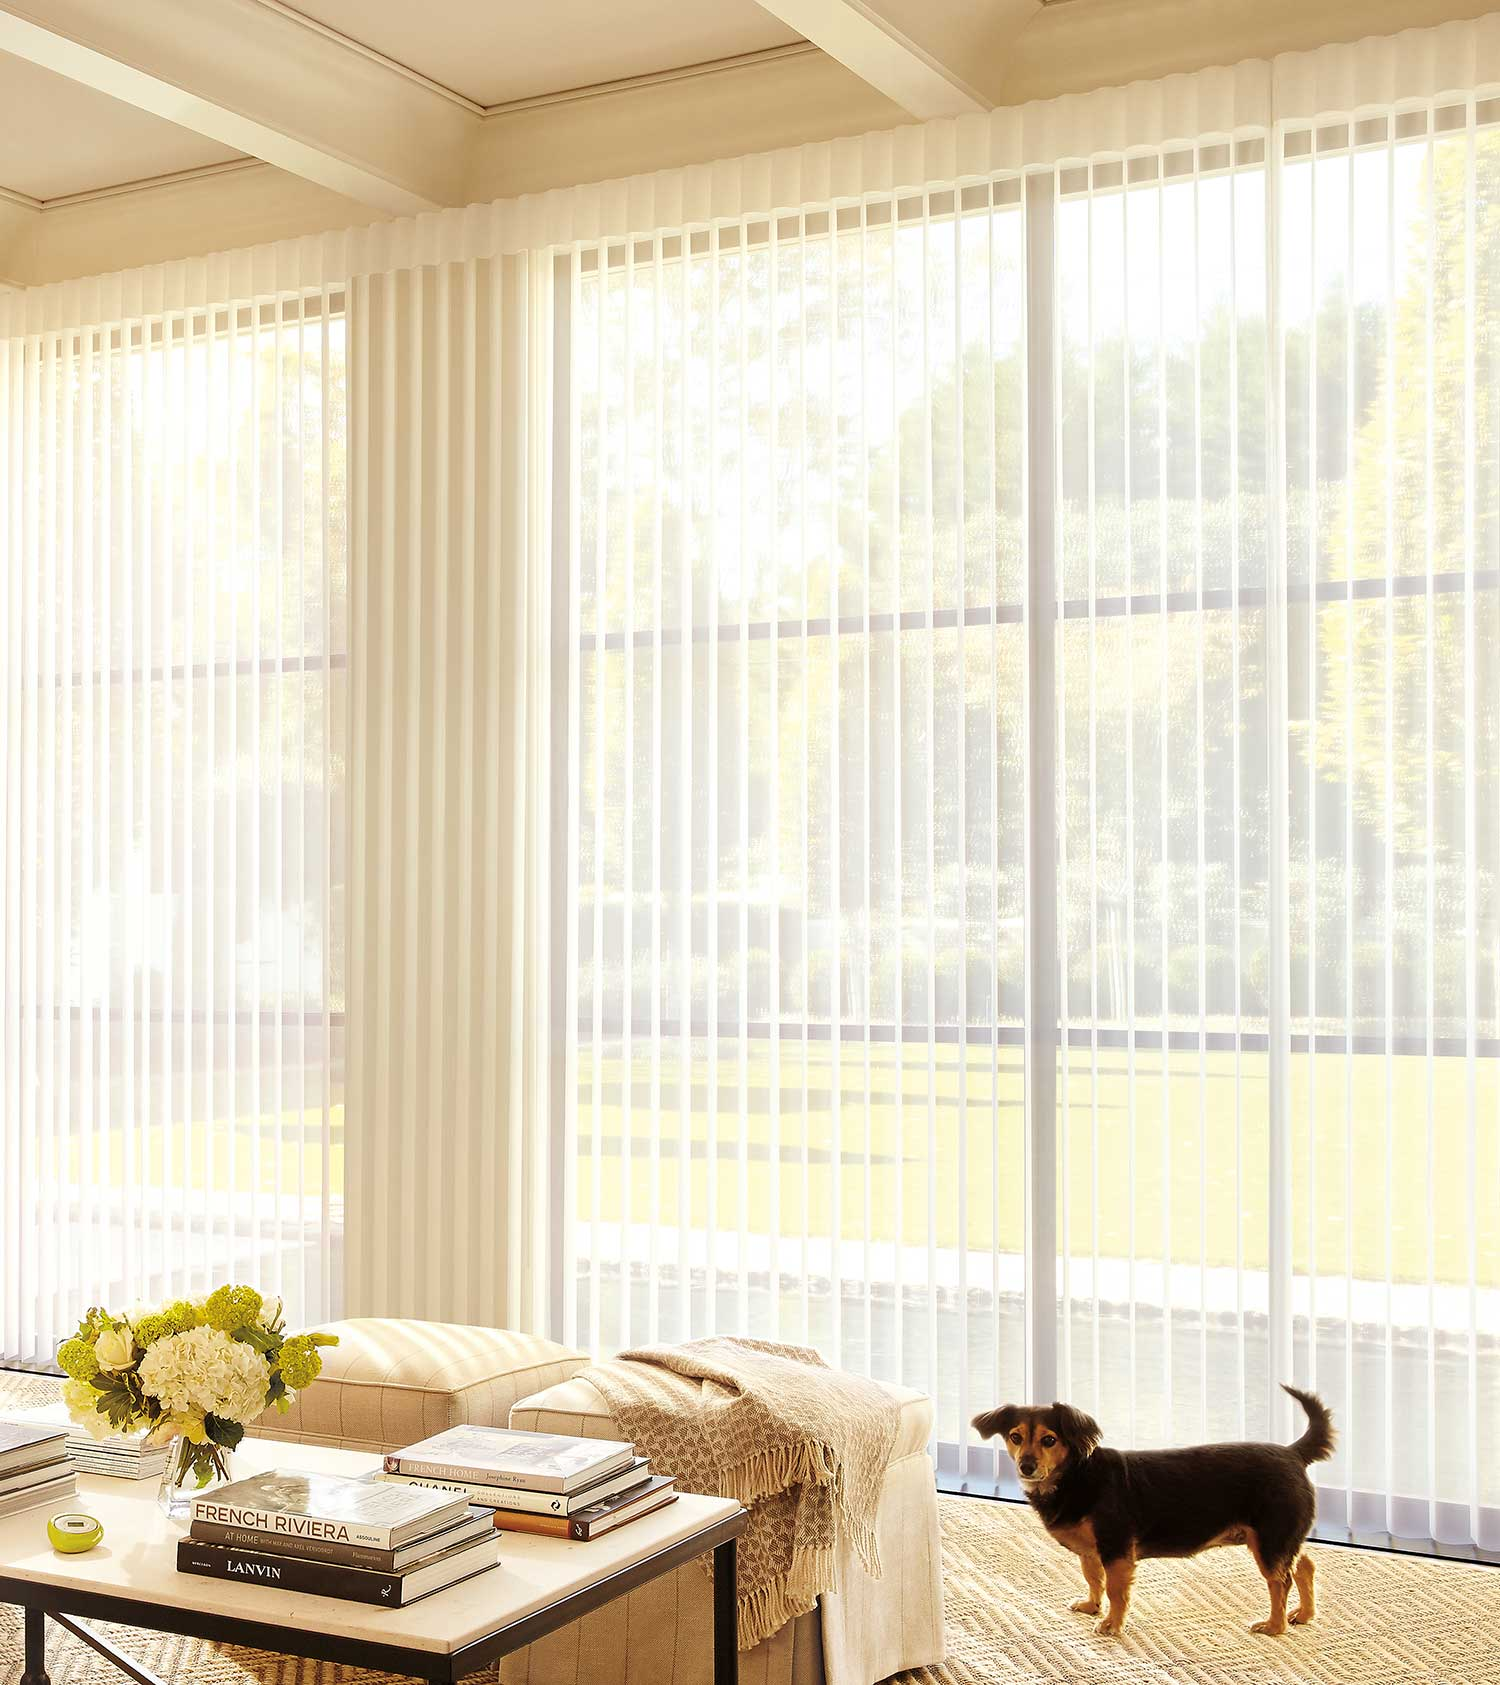 FILTER OUT GLARE - Sunlight is diffused through the Luminette® Privacy Sheers and spread evenly throughout your room to maximize daylight and reduce your need for artificial light. The fabric vanes can be positioned to minimize the UV rays entering the room, helping to protect your furniture and flooring from fading.